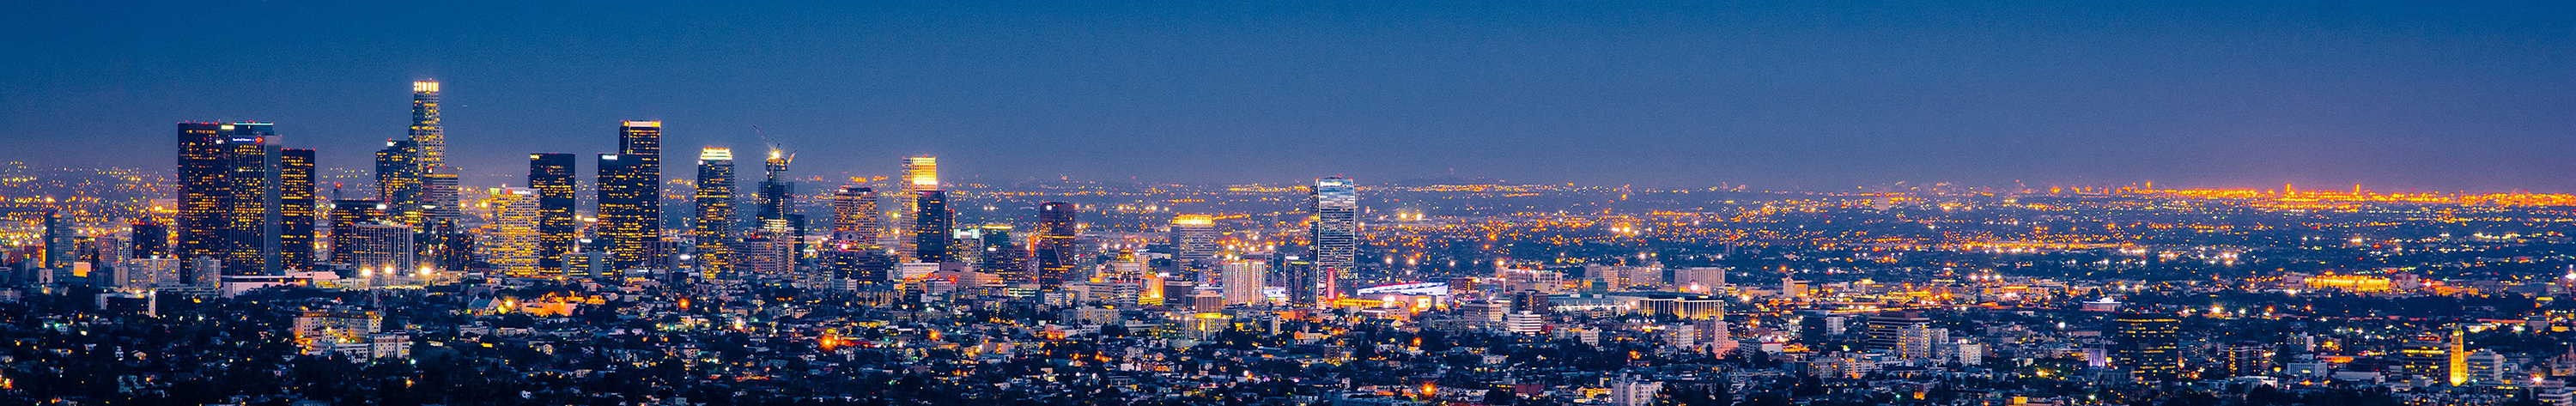 Los Angeles night view